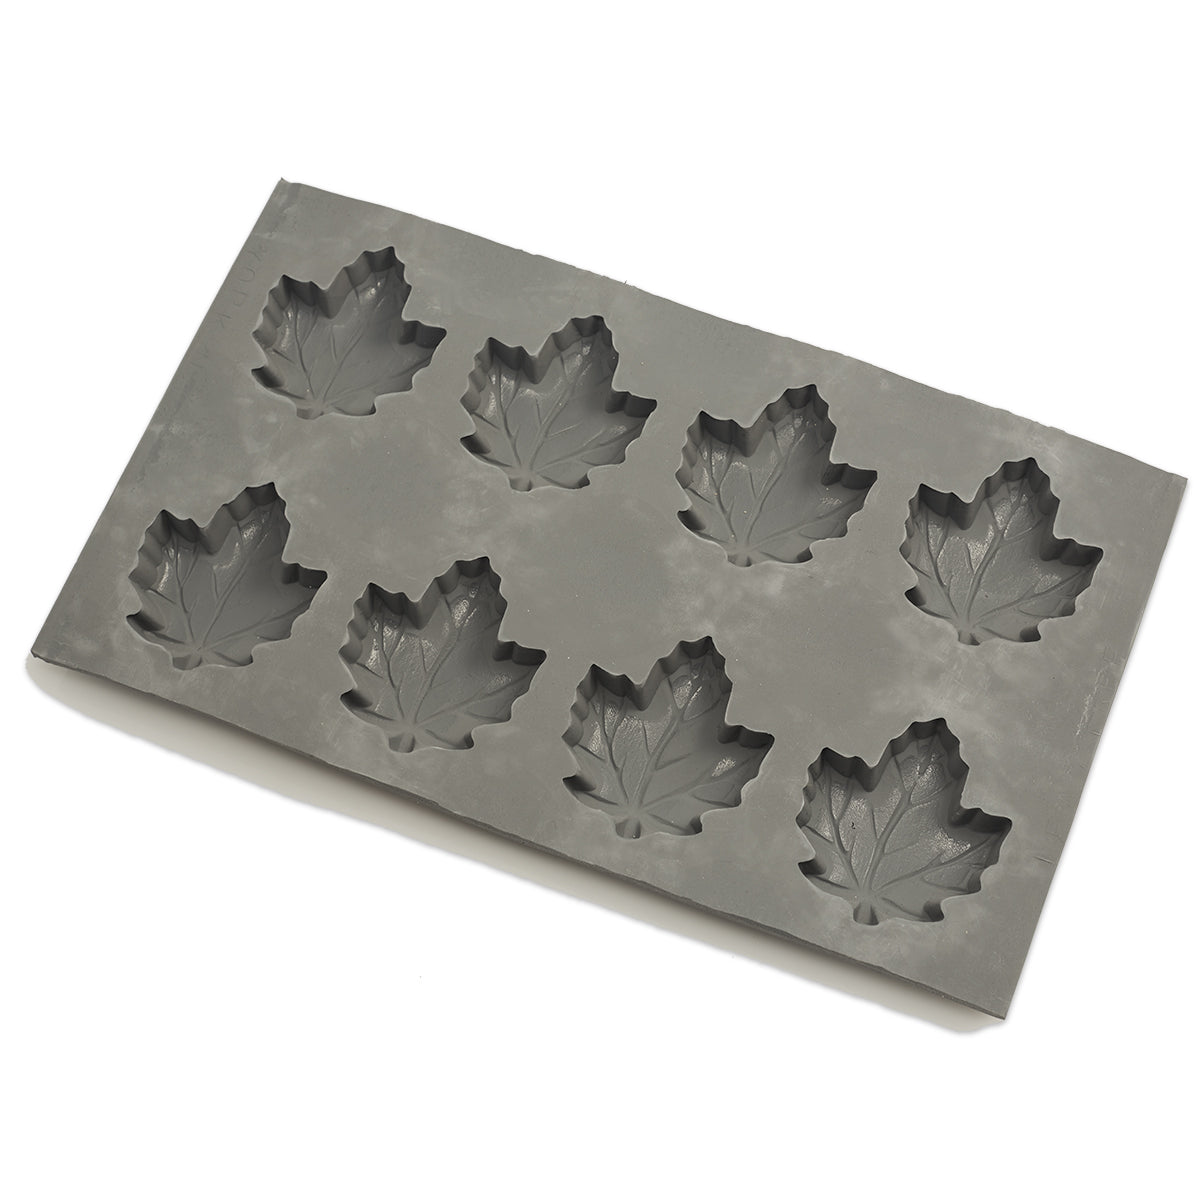 2 oz Maple Leaf Rubber Candy Mold (8 Cavity)